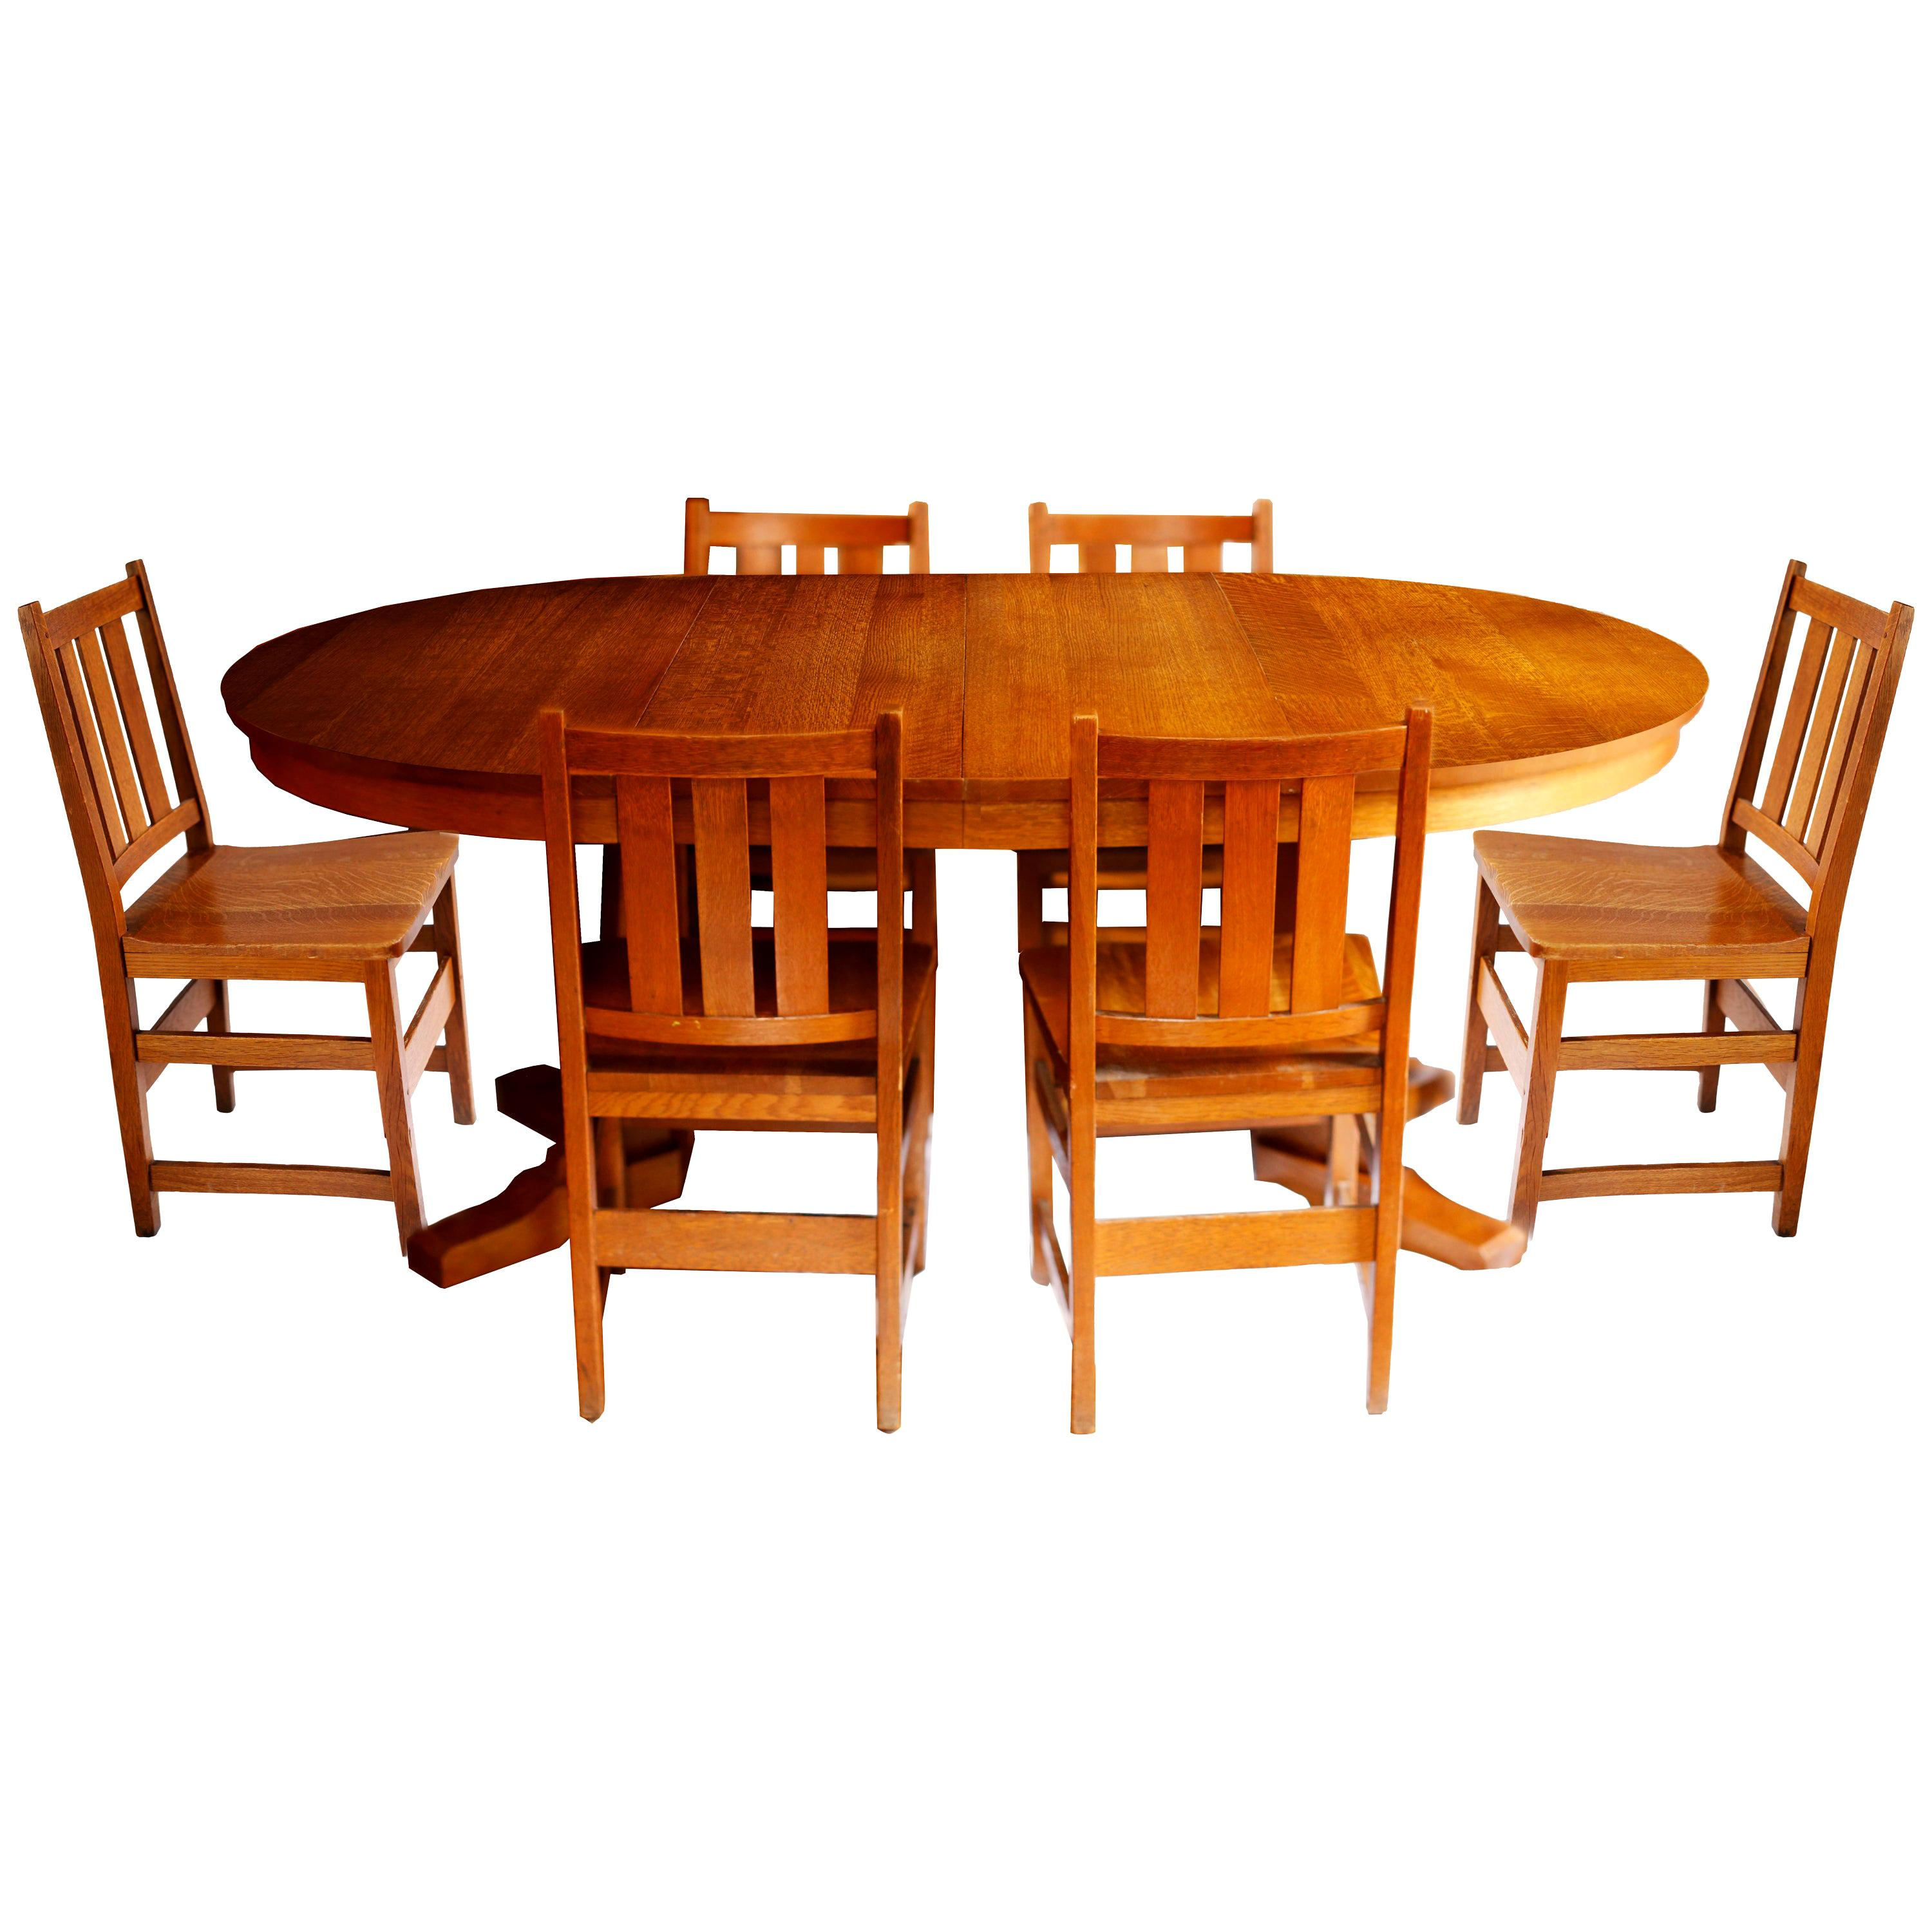 Stickley Dining Chairs, Used Stickley Dining Room Furniture